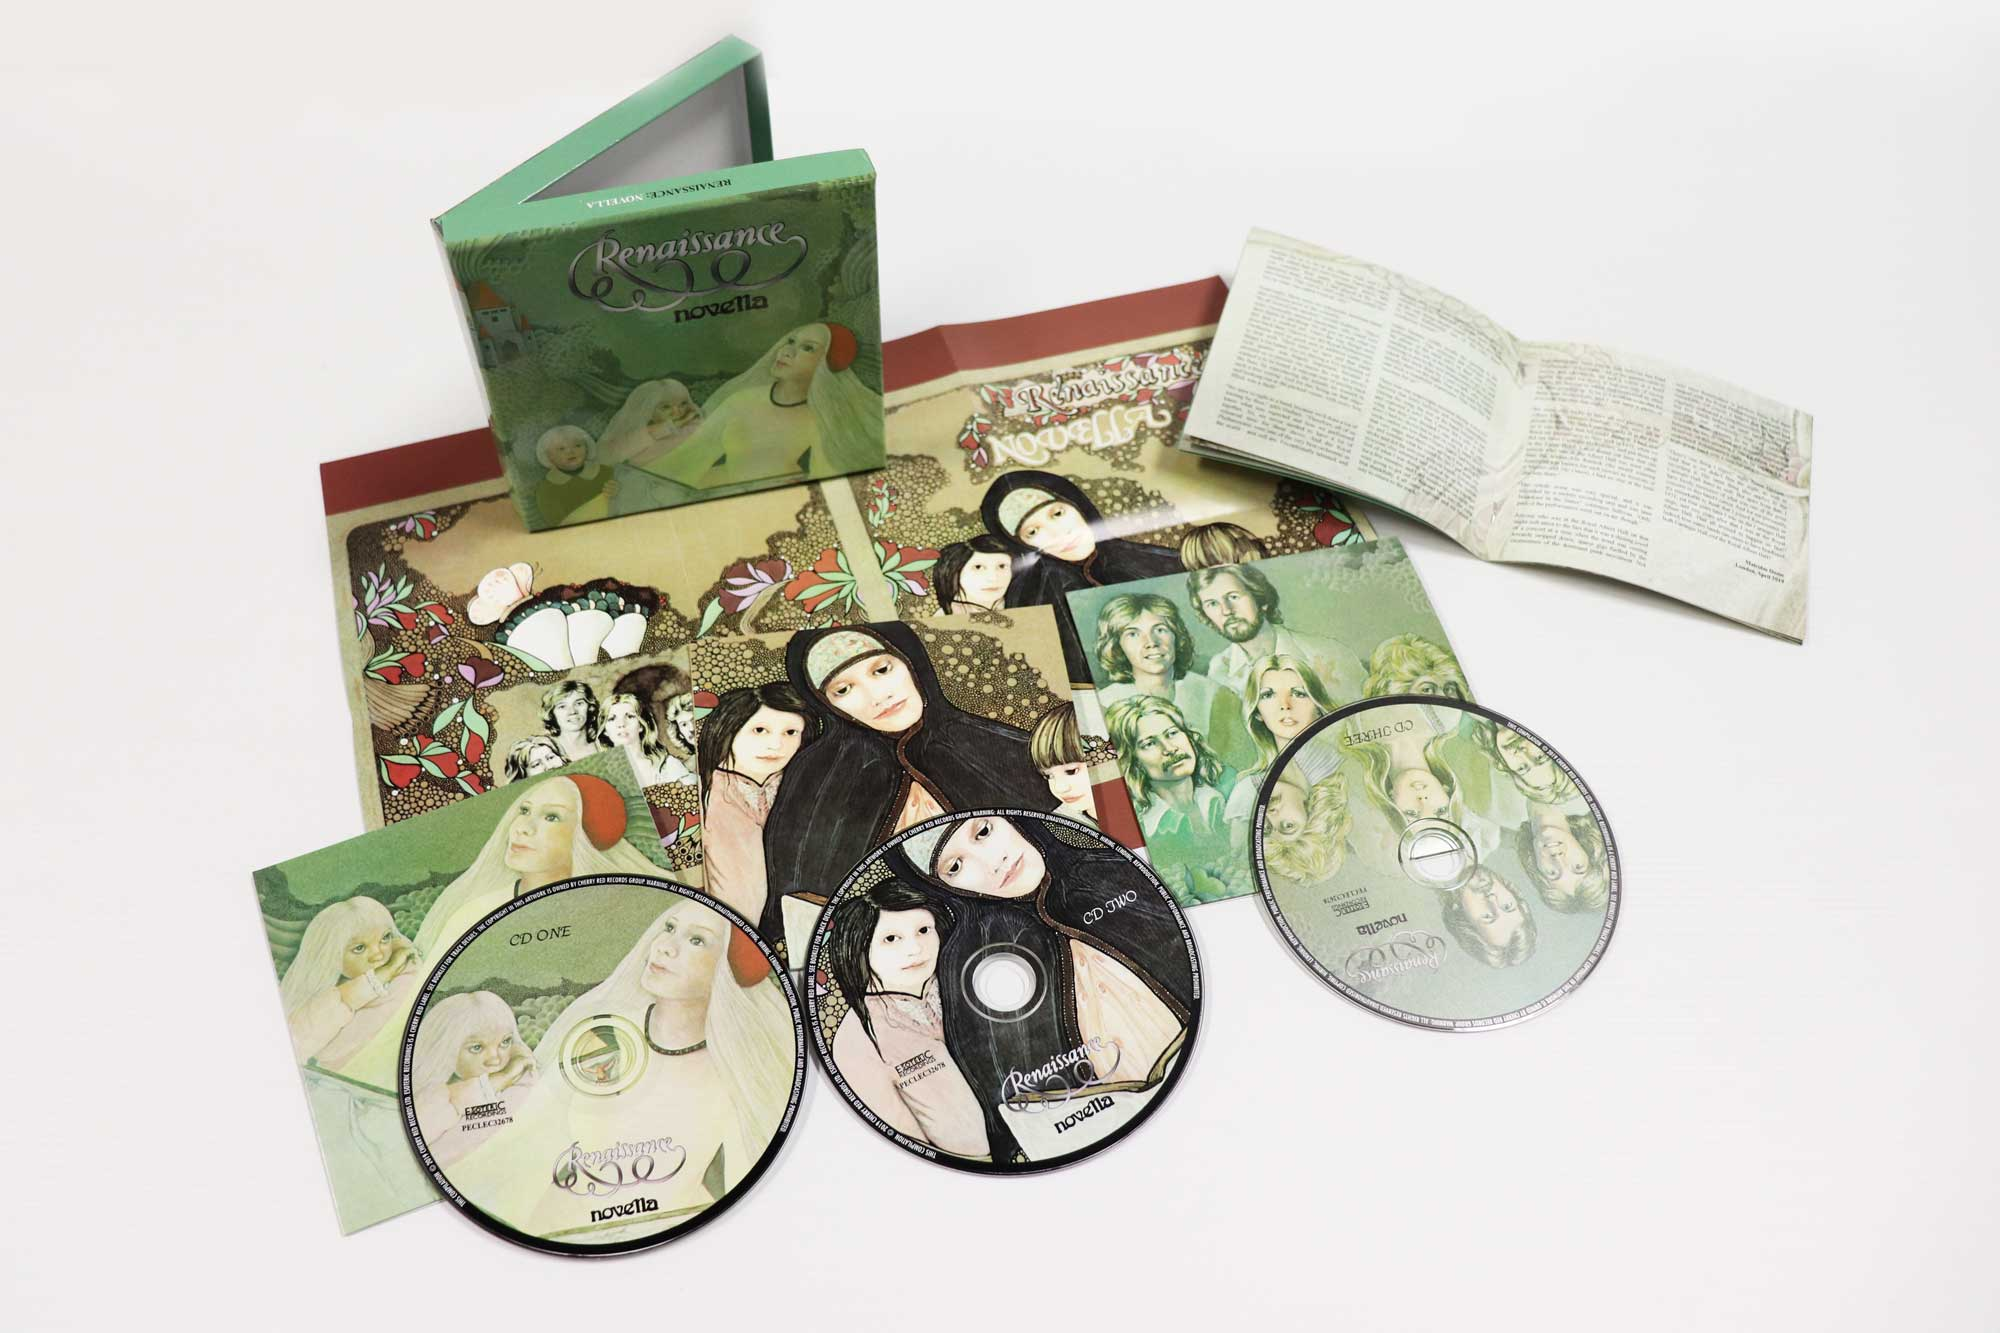 Renaissance: Novella, 3CD Remastered and Expanded Edition